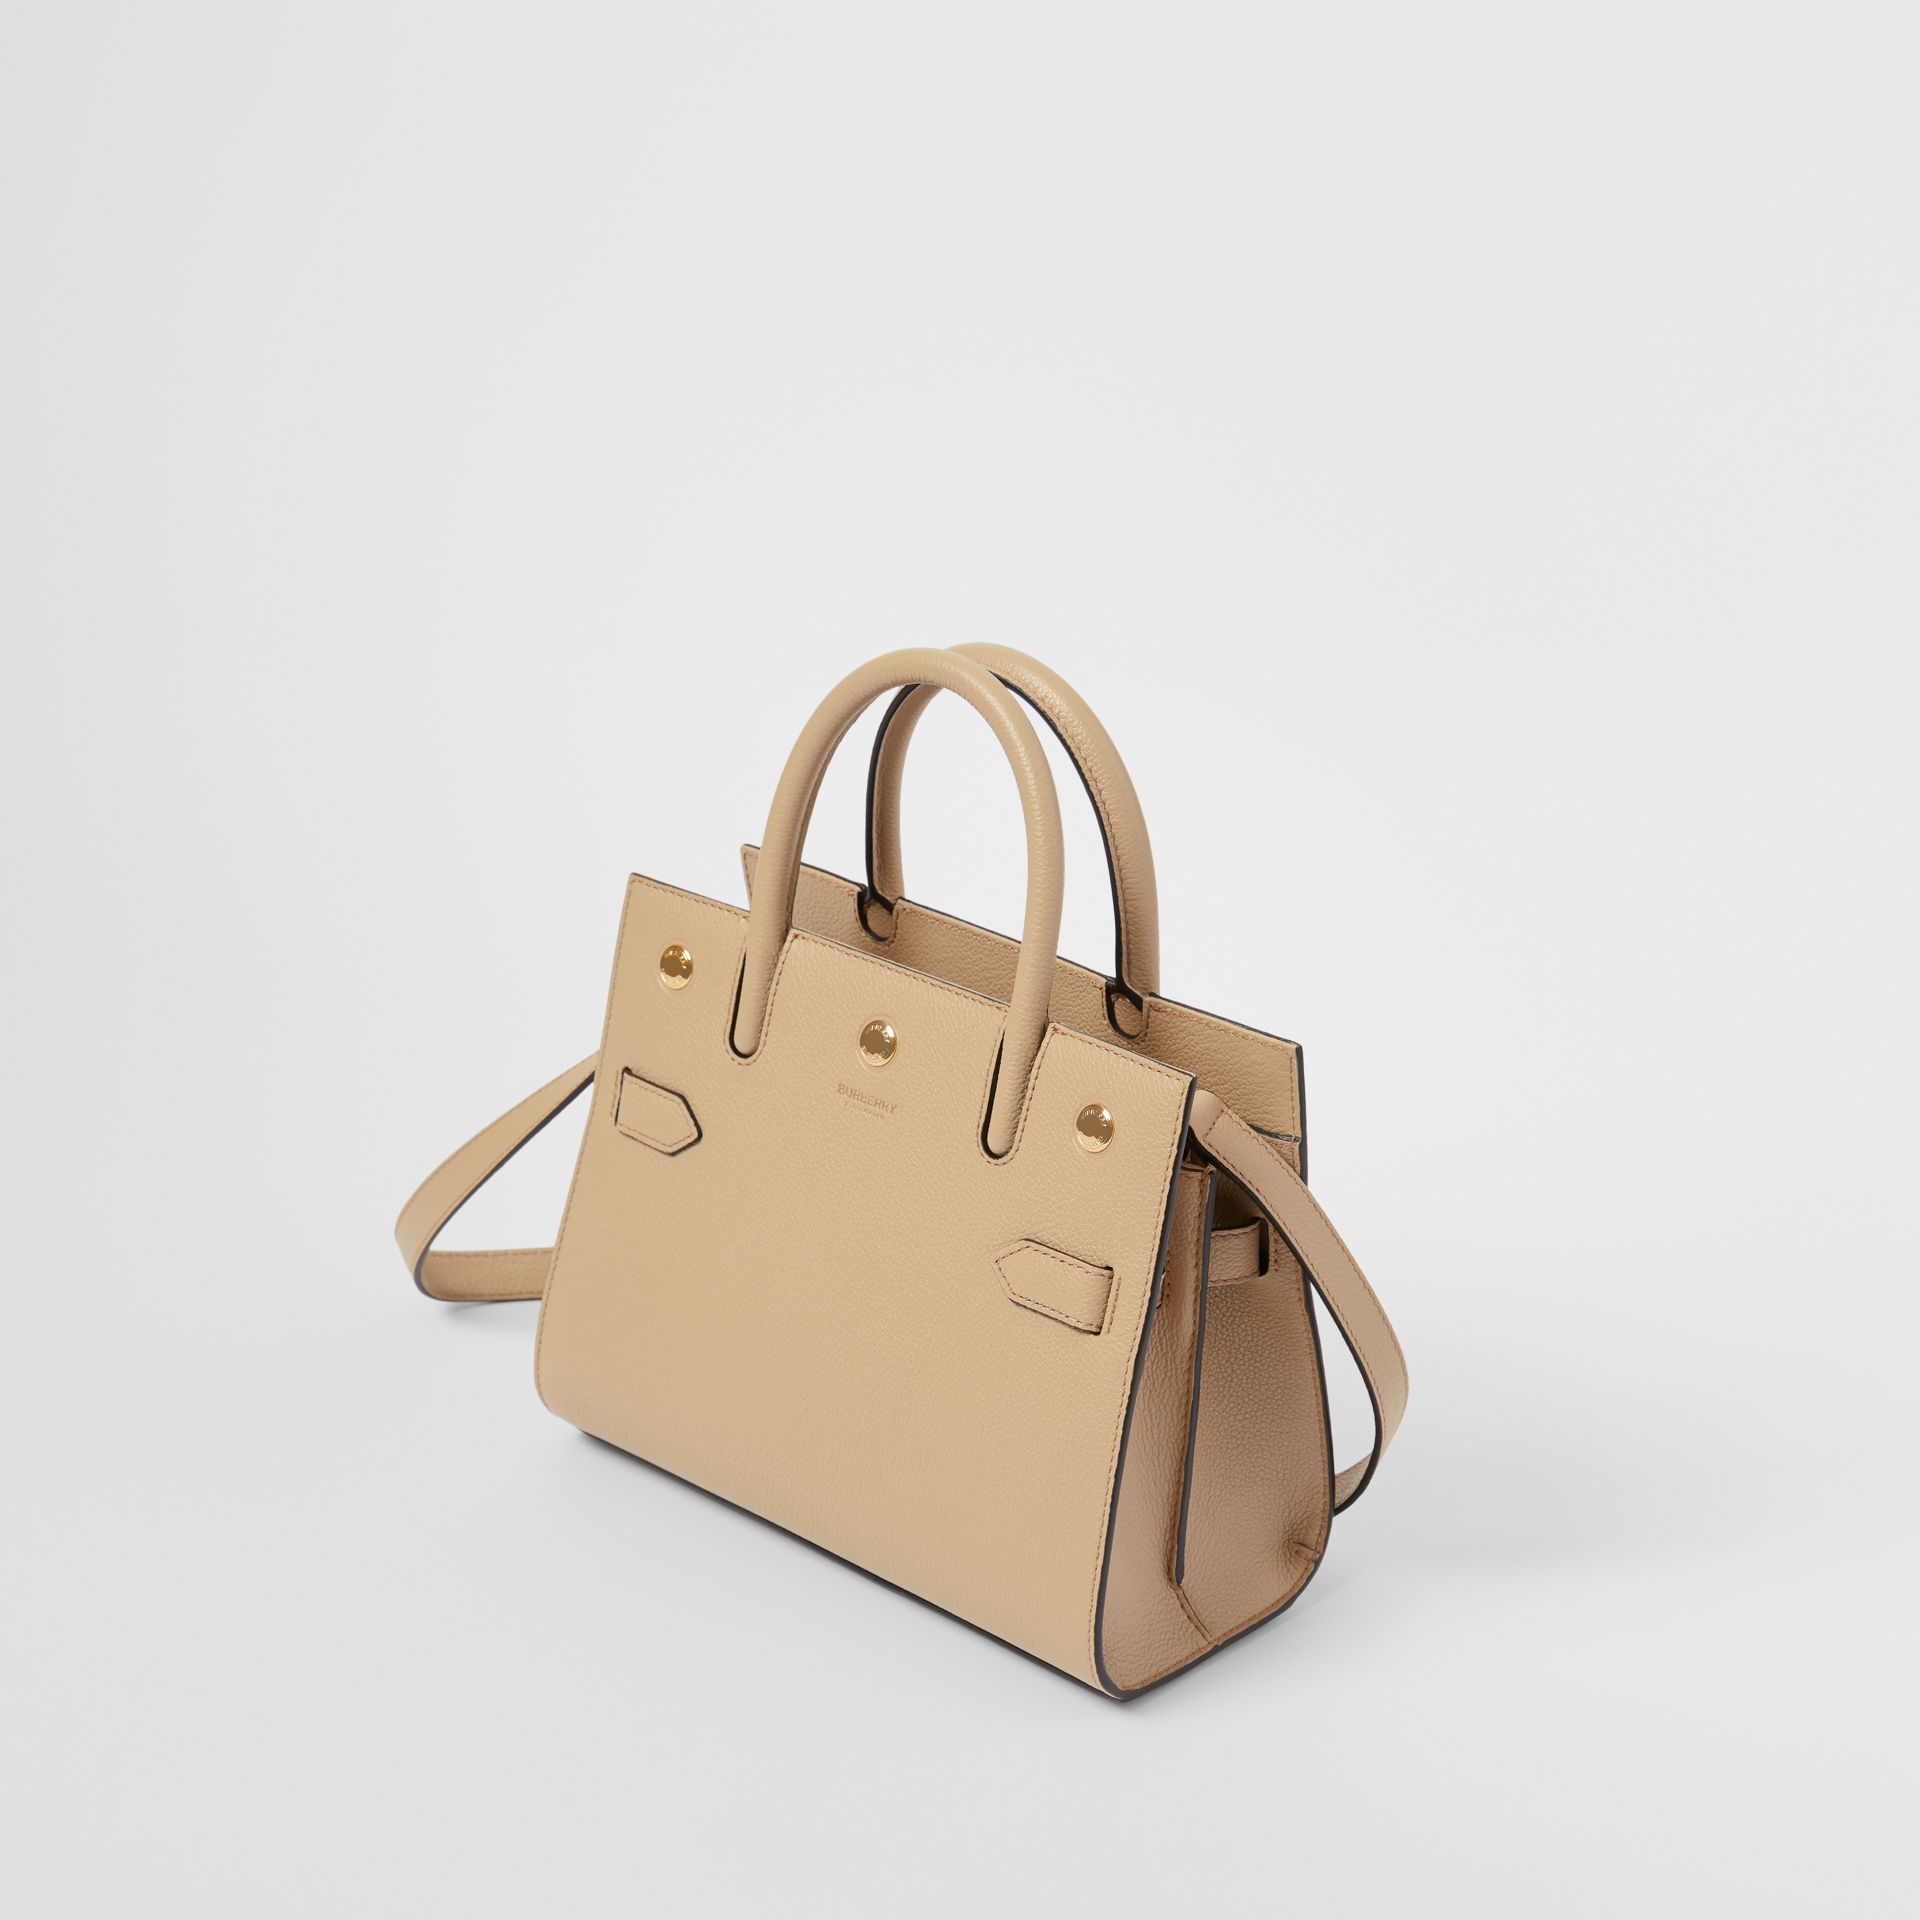 Mini Leather Two-handle Title Bag in Light Beige - Women | Burberry - gallery image 3